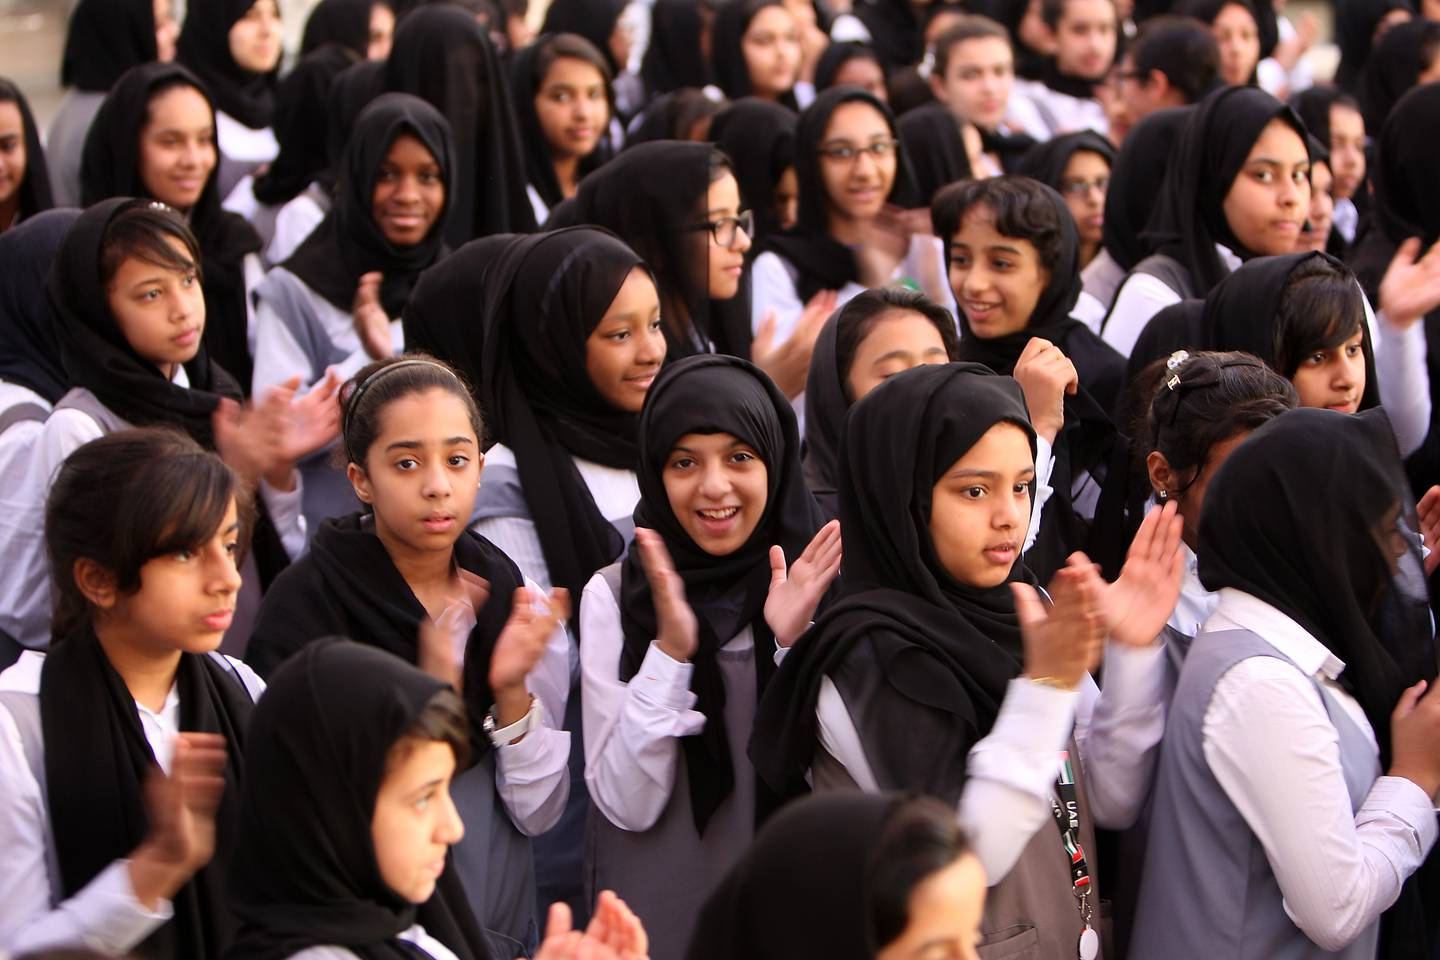 ABU DHABI , UNITED ARAB EMIRATES  Ð  Nov 20 : Students of Al Marwa girls school celebrating the National Day during the assembly at the school campus in Abu Dhabi. ( Pawan Singh / The National ) For Focus. Story by Bushra